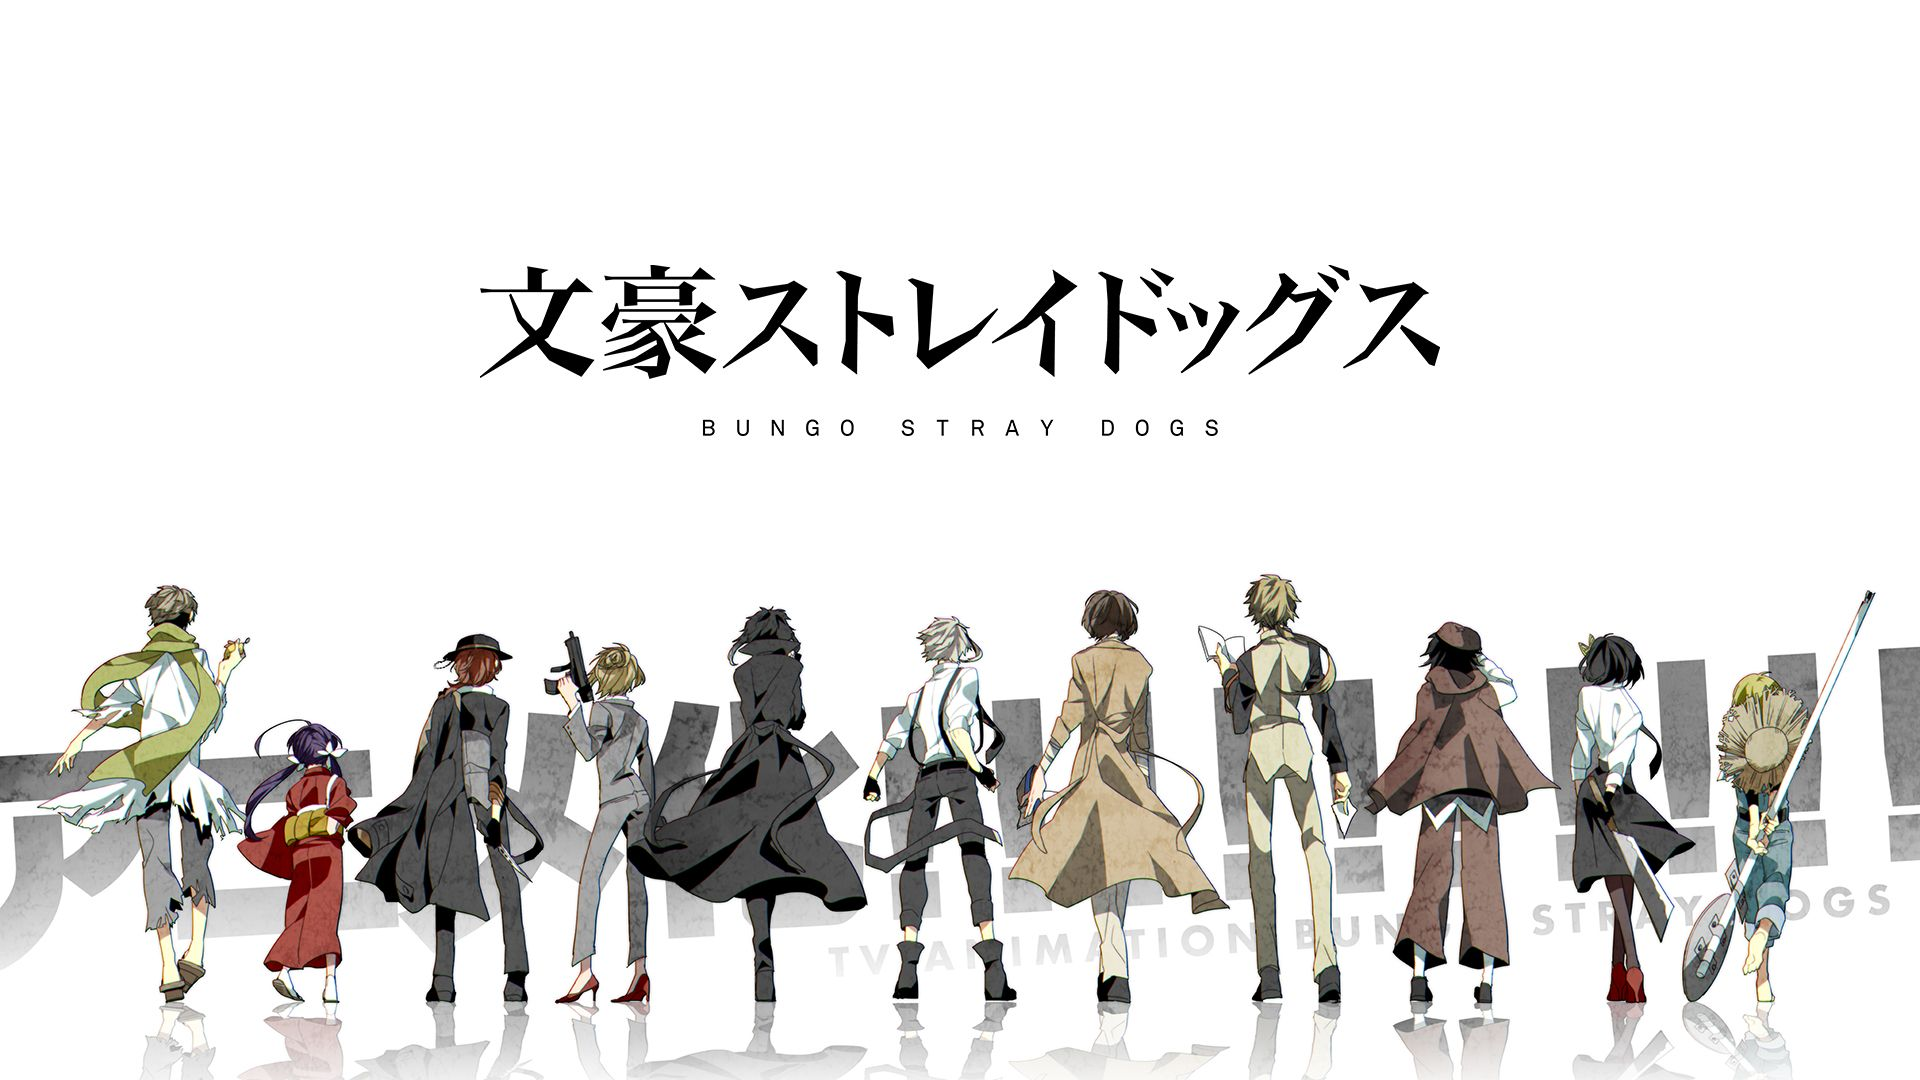 Pin By Ruki On 文豪ストレイドッグス Pinterest Bungou Stray Dogs